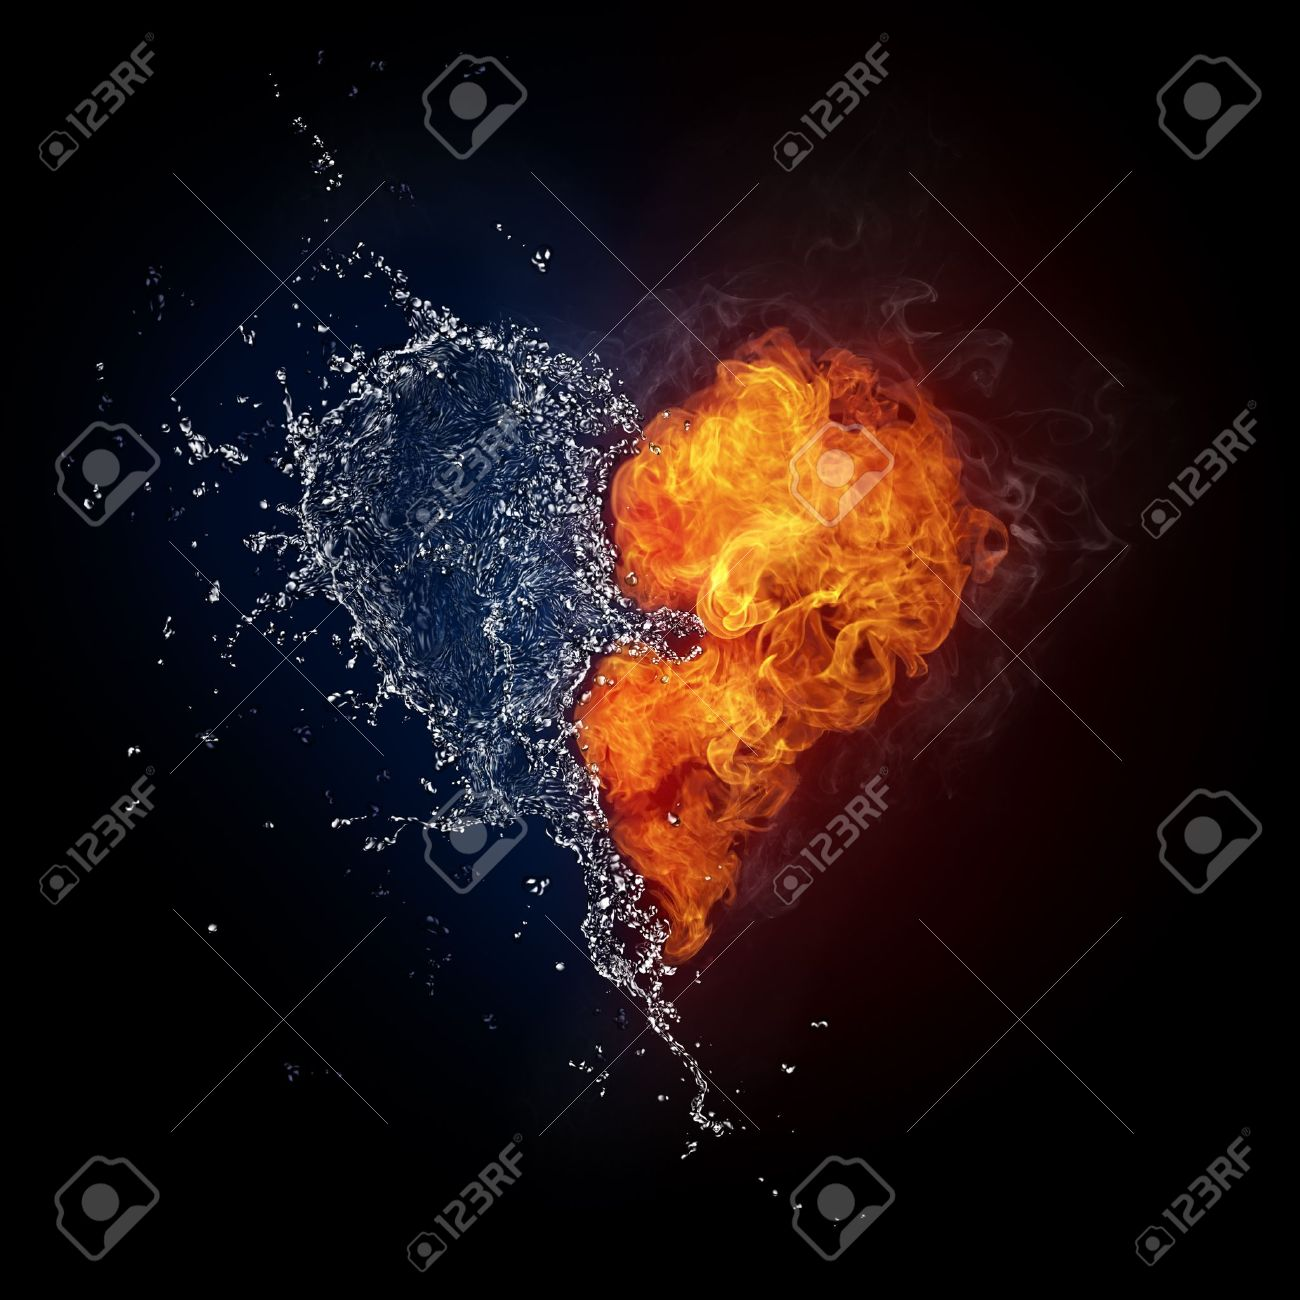 Heart in Fire and Water Isolated on Black Background. Computer Graphics. - 7995421